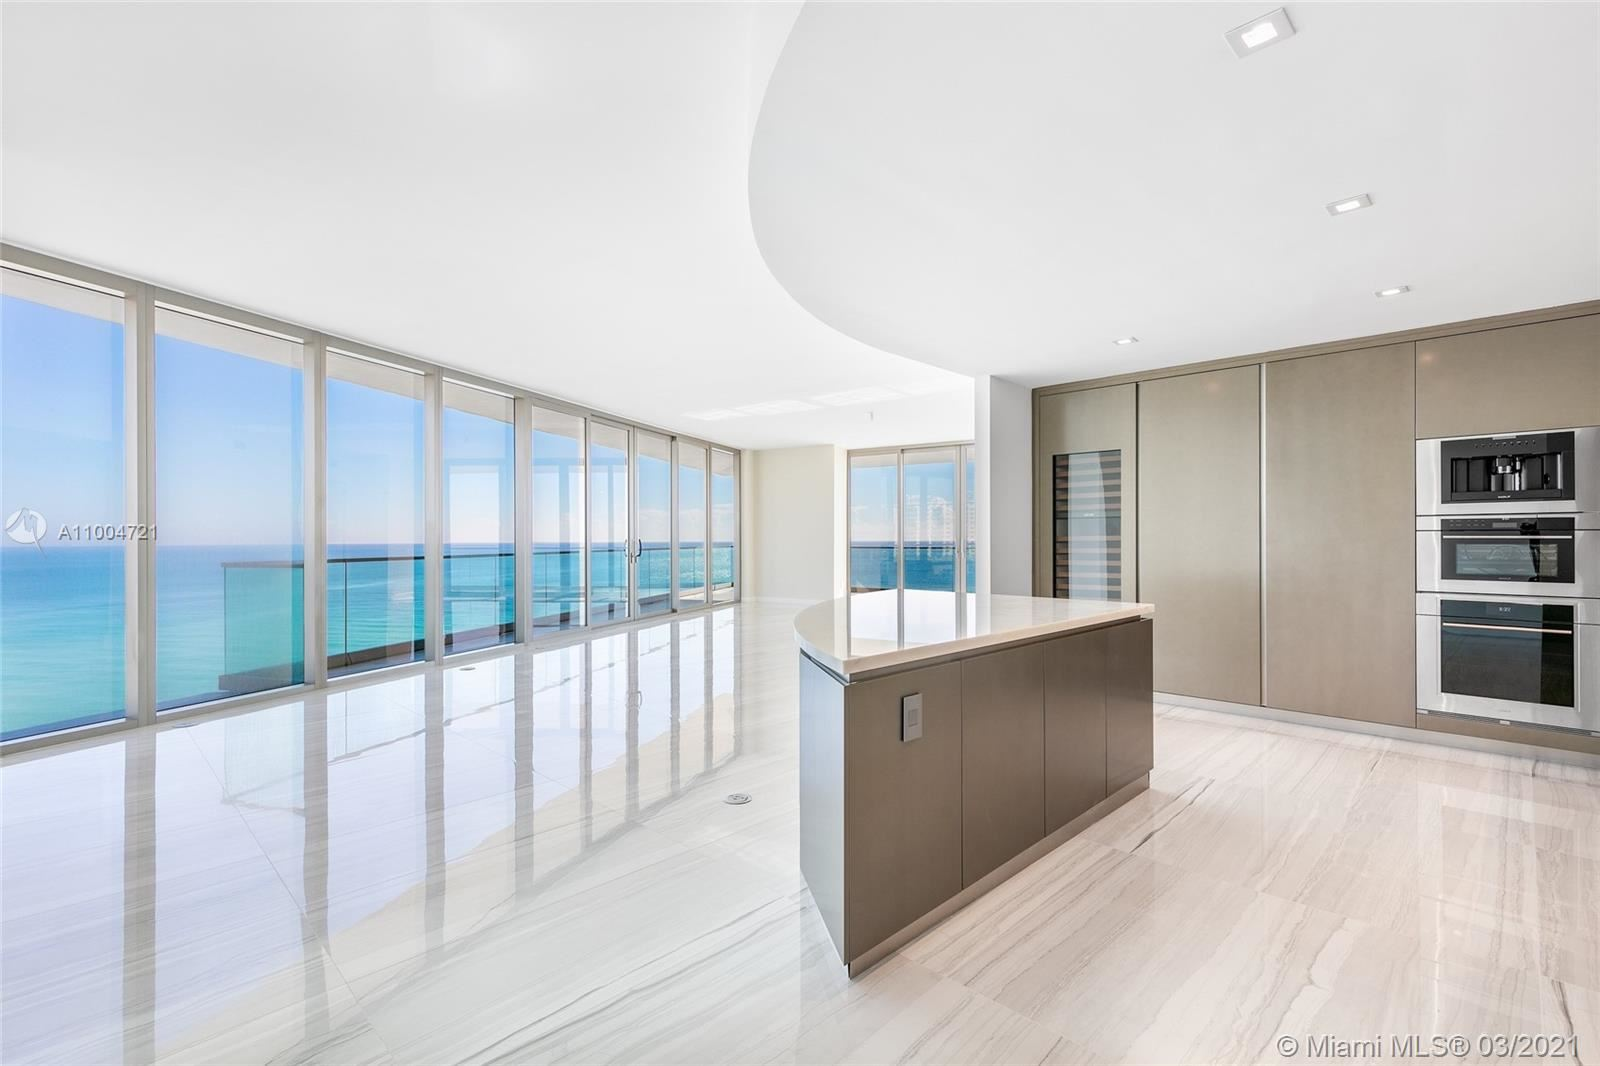 18975 Collins Ave #600, Sunny Isles, FL 33160 - #: A11004721